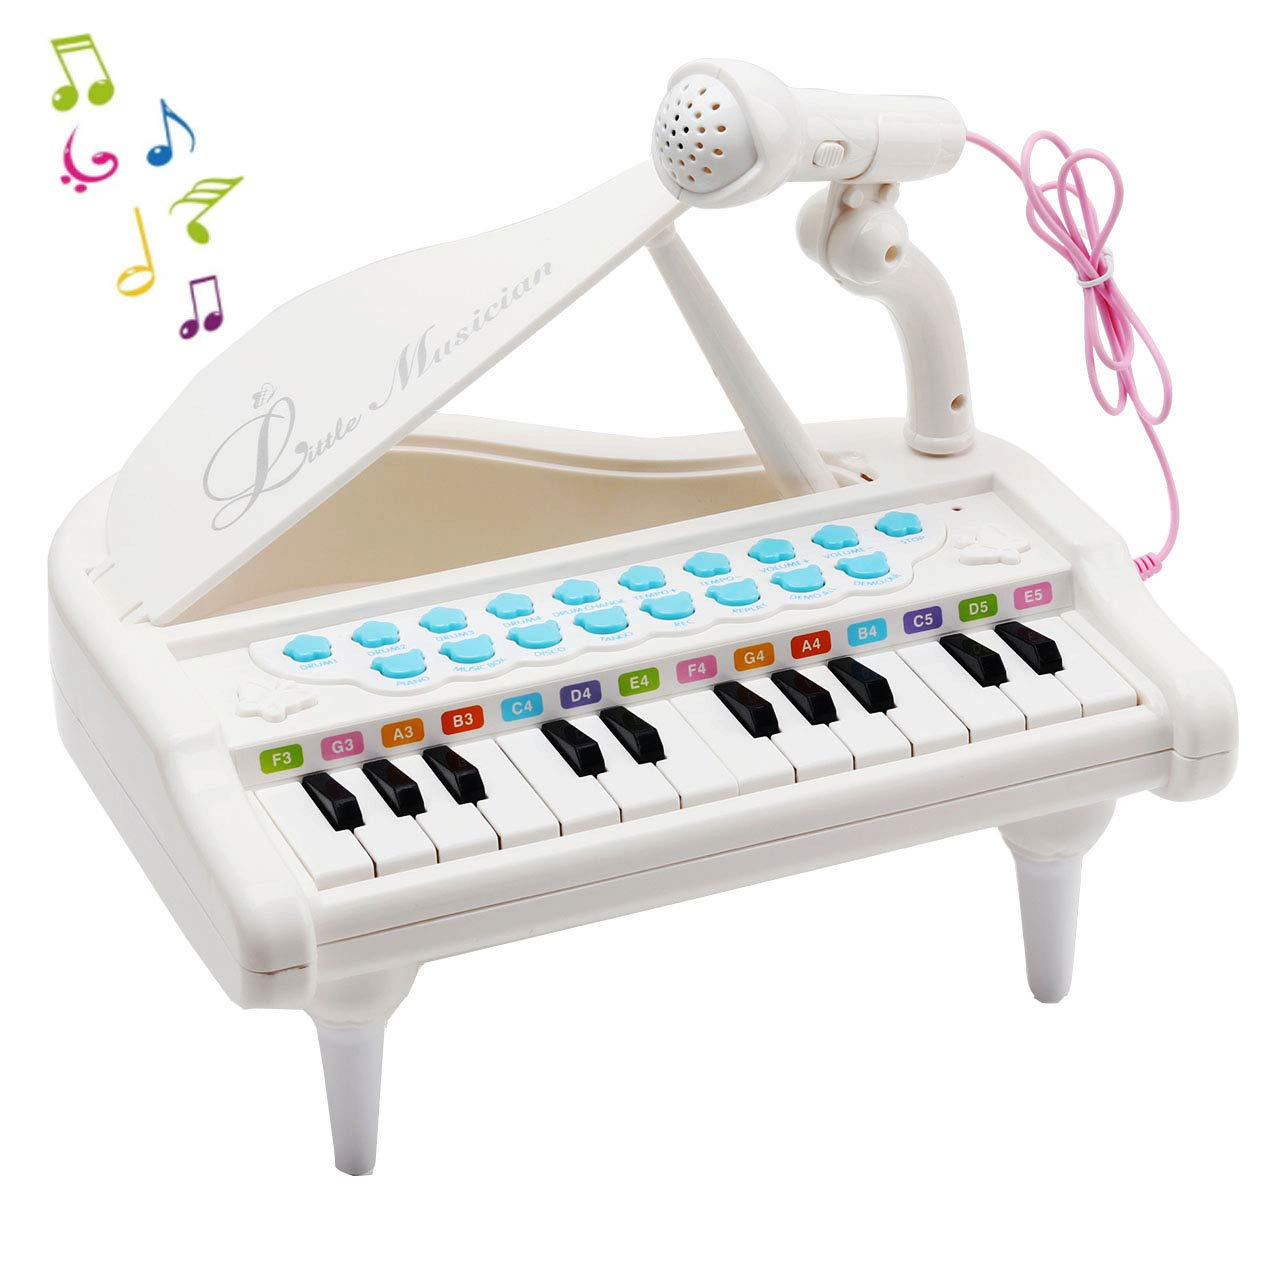 Amy & Benton Piano Keyboard Toy for Kids, 24 Keys White Toy Piano Multi-functional with Microphone for Toddlers Boys Girls Gifts toddlers piano toy Back to school Chilren's Day Birthday Day